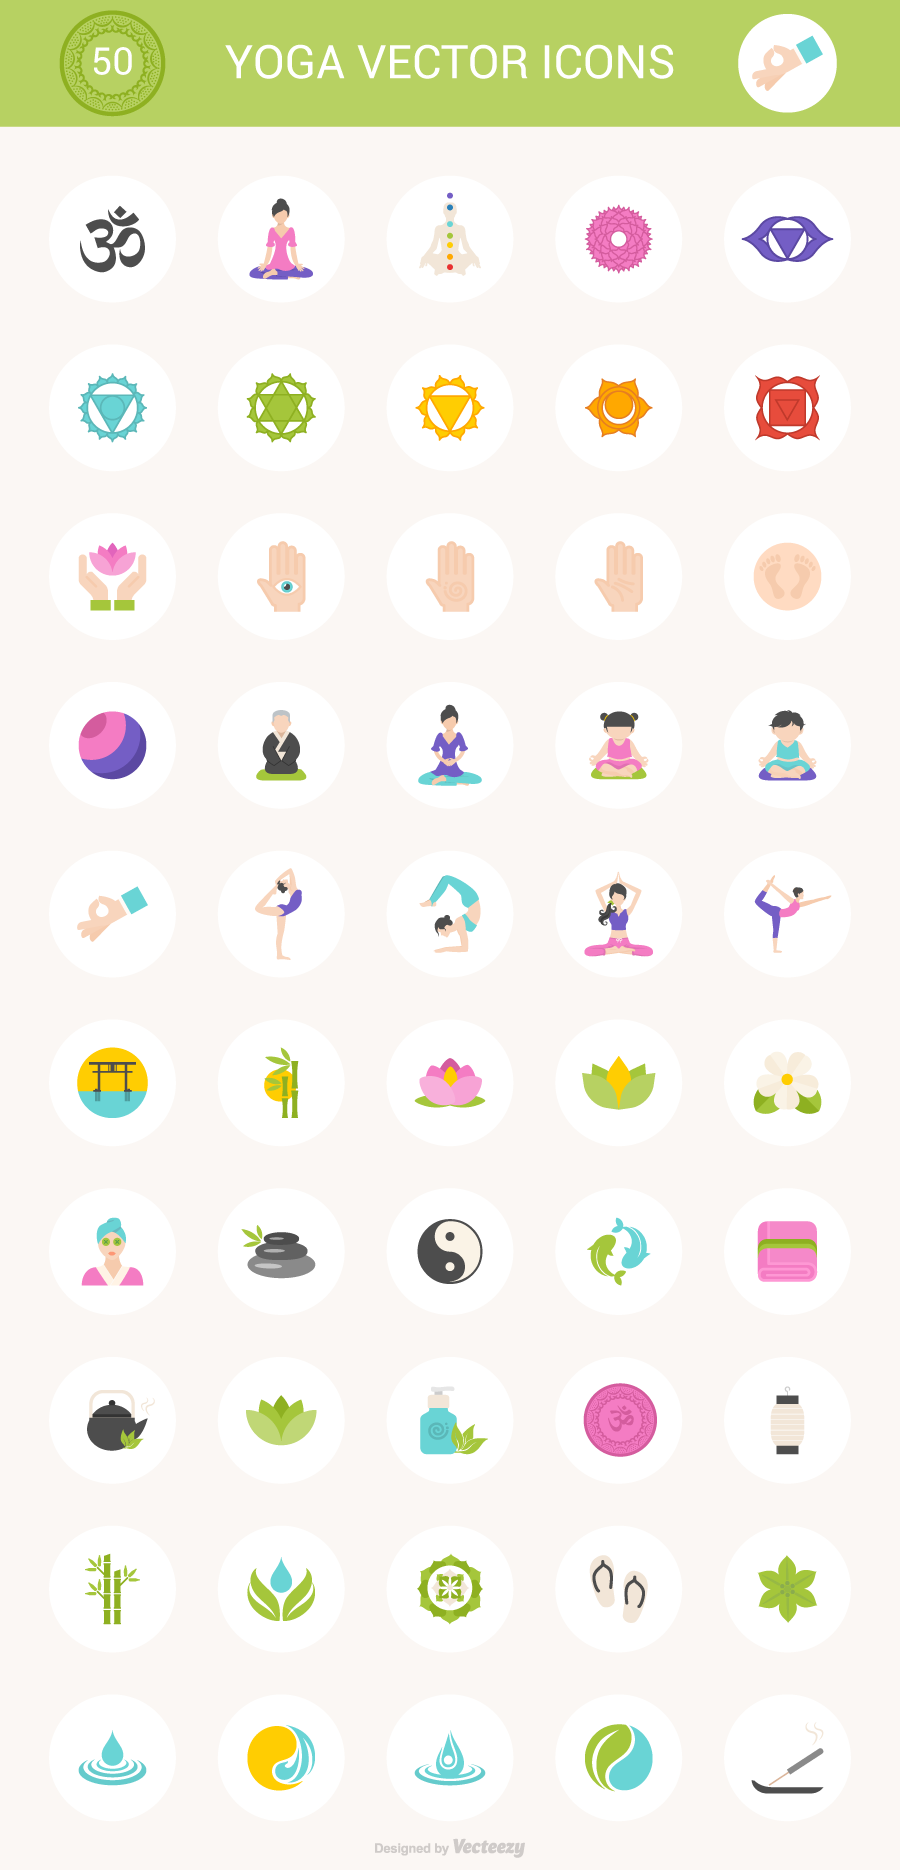 Free Download 50 Yoga Icons PSD SVG PNG AI EPS